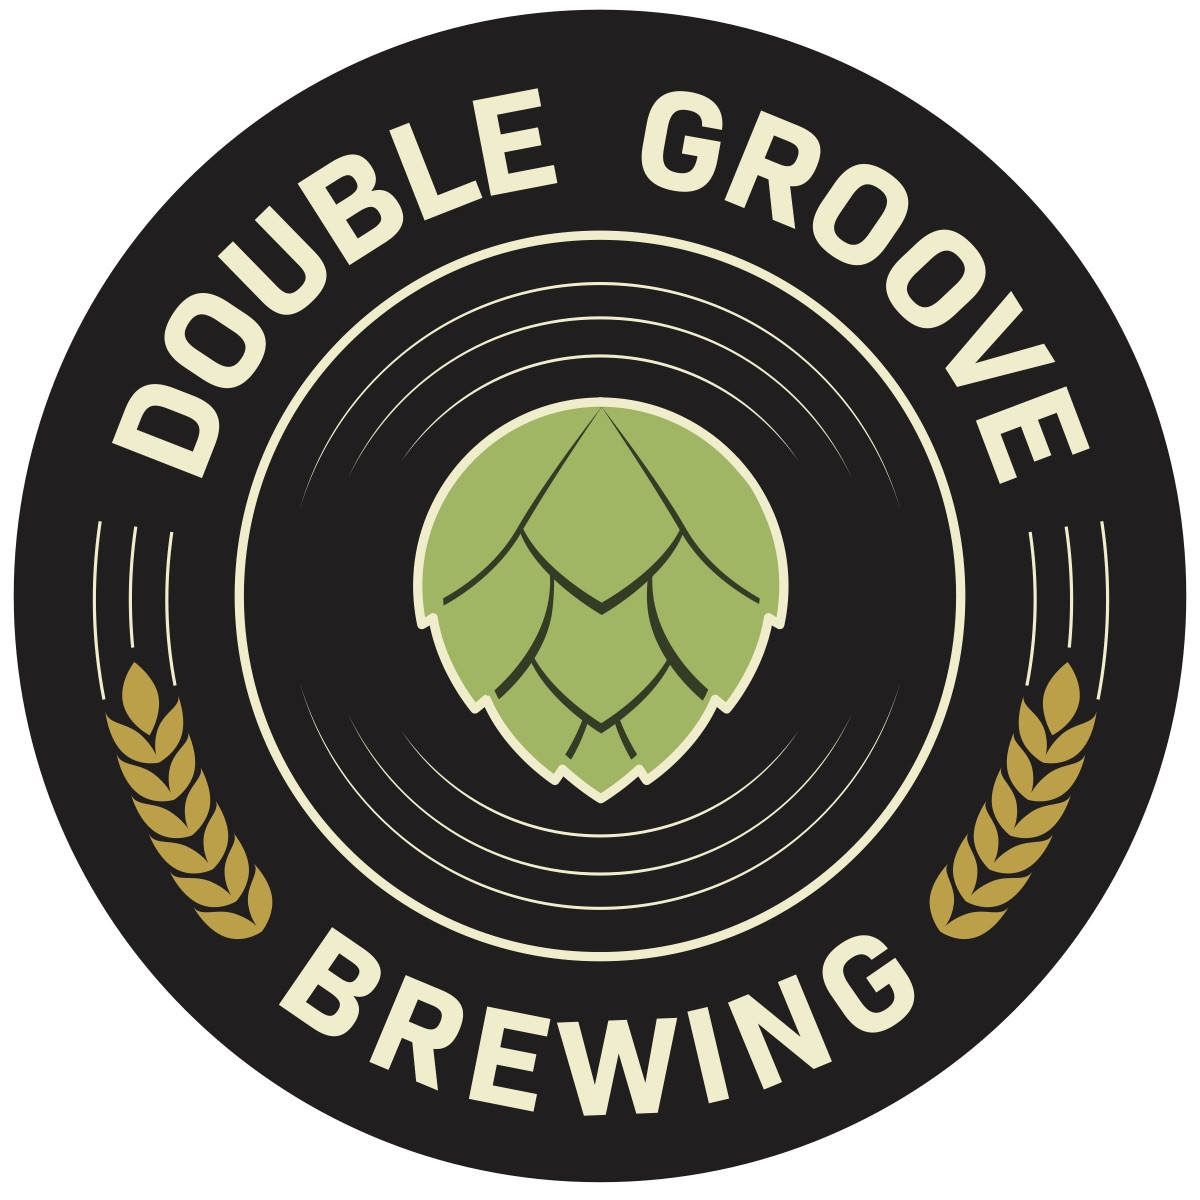 Double Groove Brewing